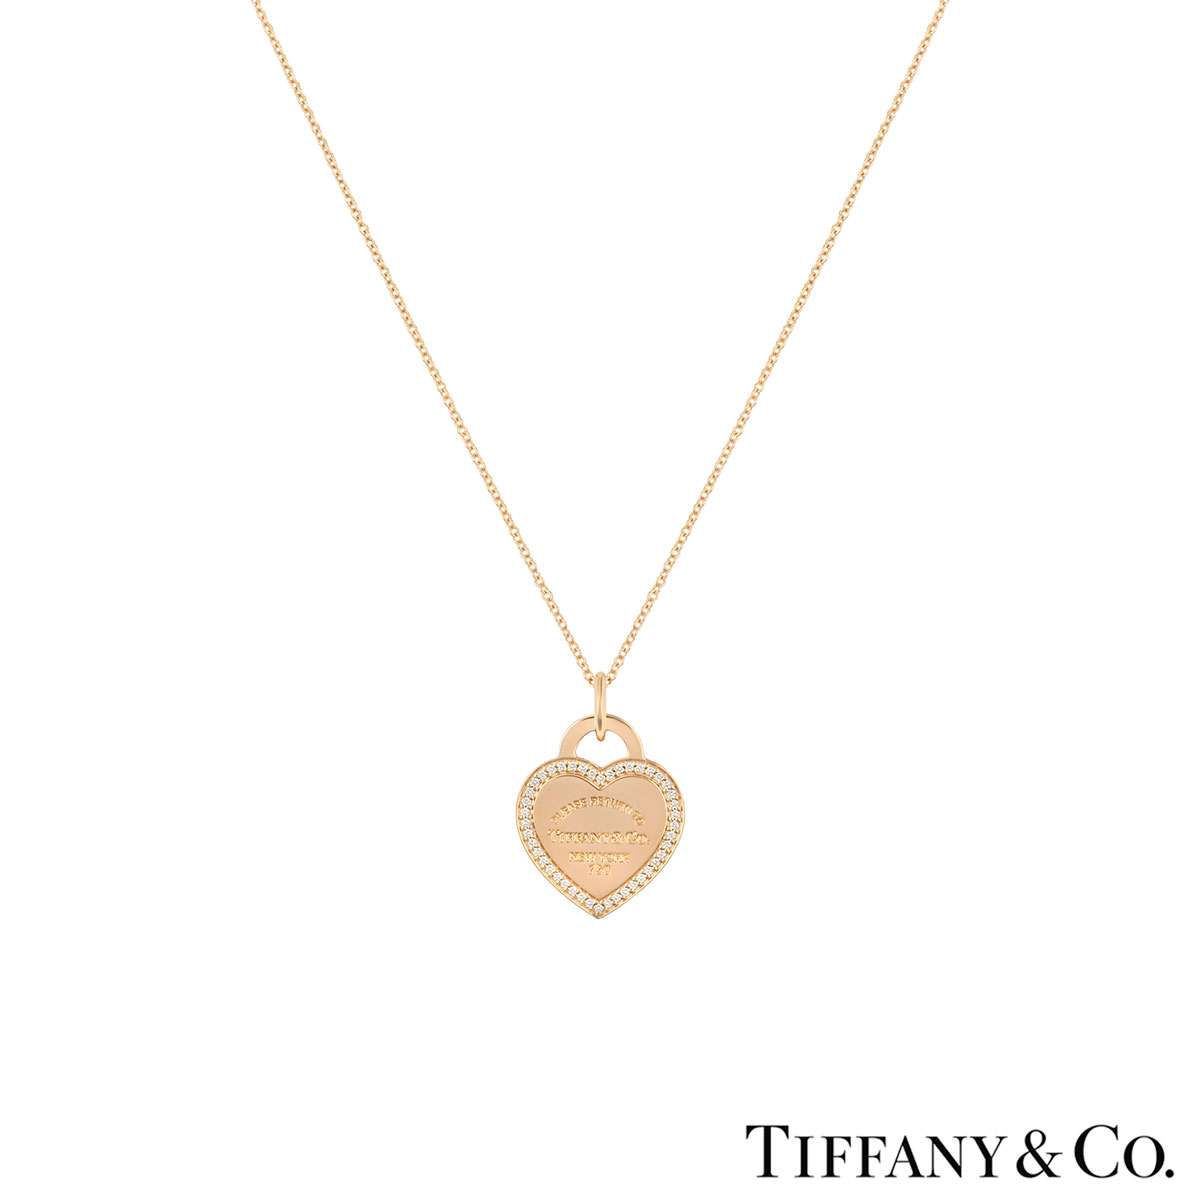 Tiffany & Co. Rose Gold Return to Tiffany Pendant